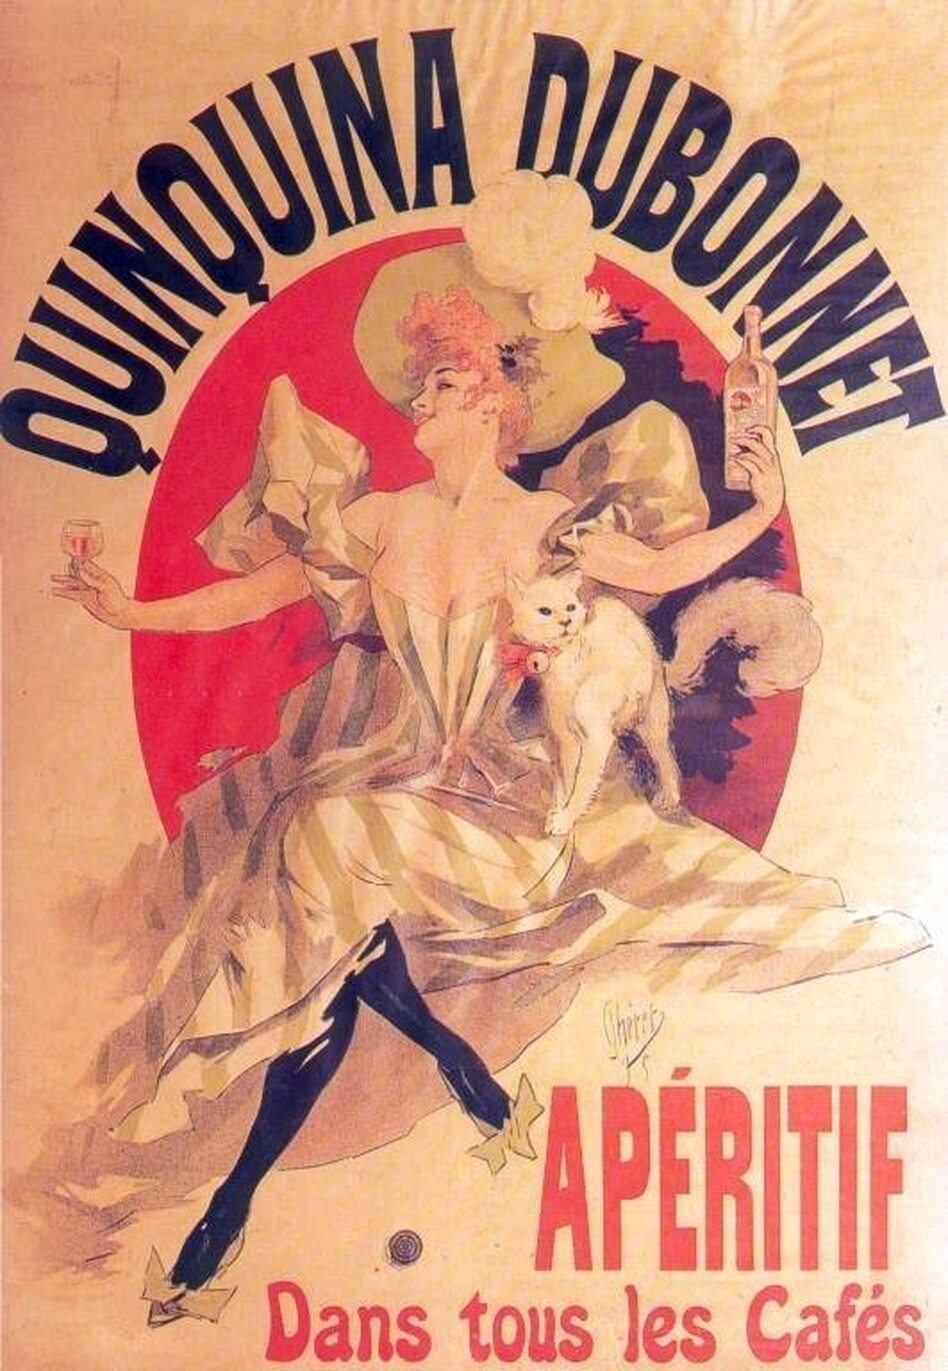 Dubonnet is a French liqueur made wine, herbs and quinine. Joseph Dubonnet concocted the beverage as way to make troops take their malaria medication. (Wikimedia Commons)